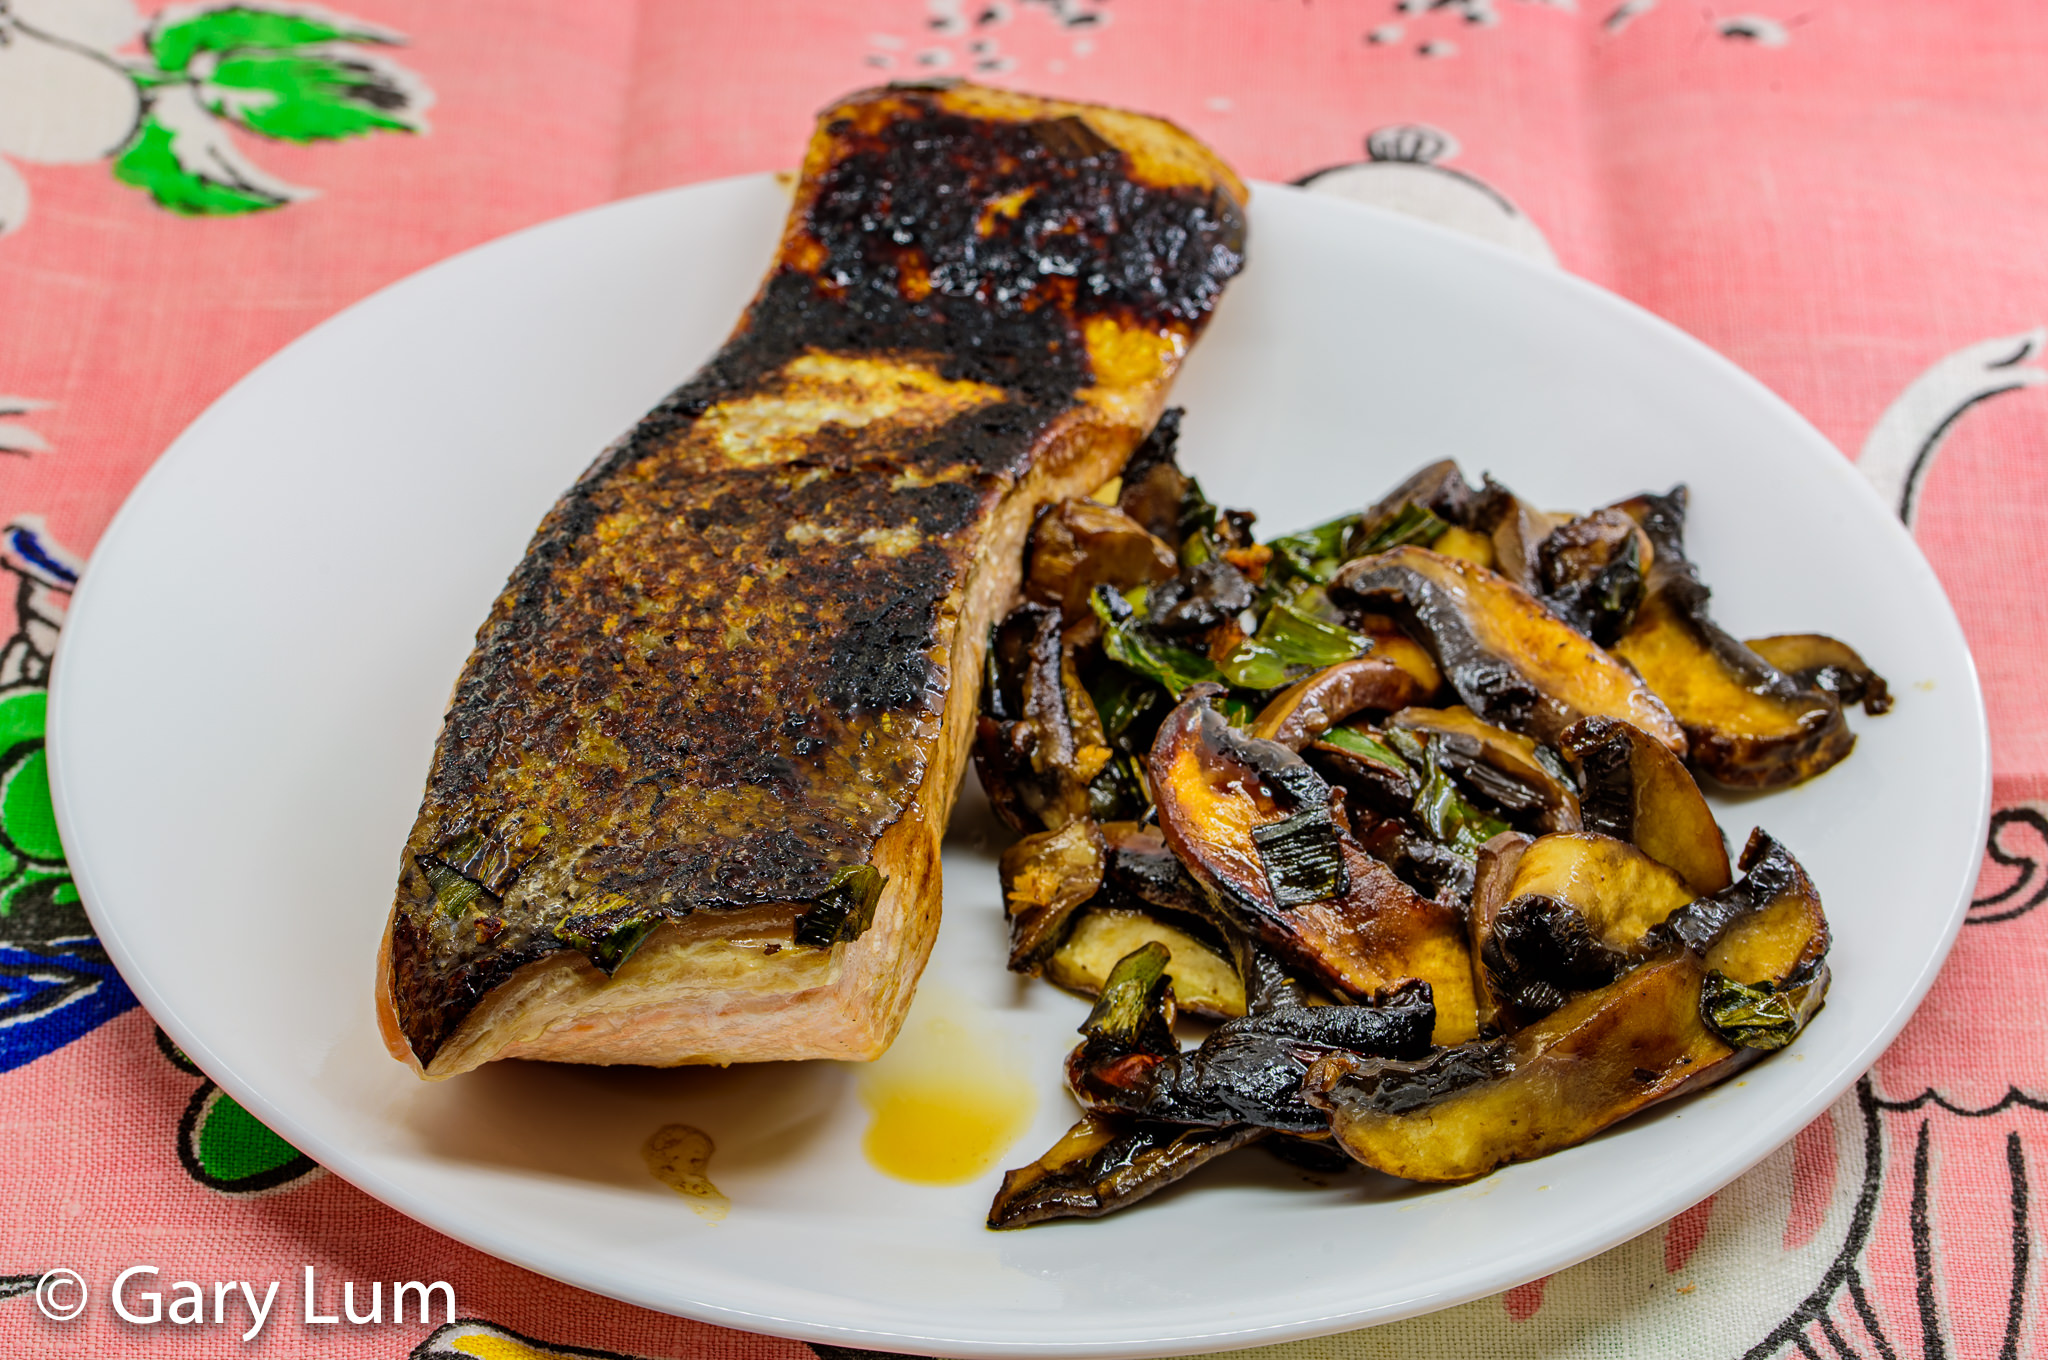 Pan-fried salmon with butter mushrooms. Gary Lum.